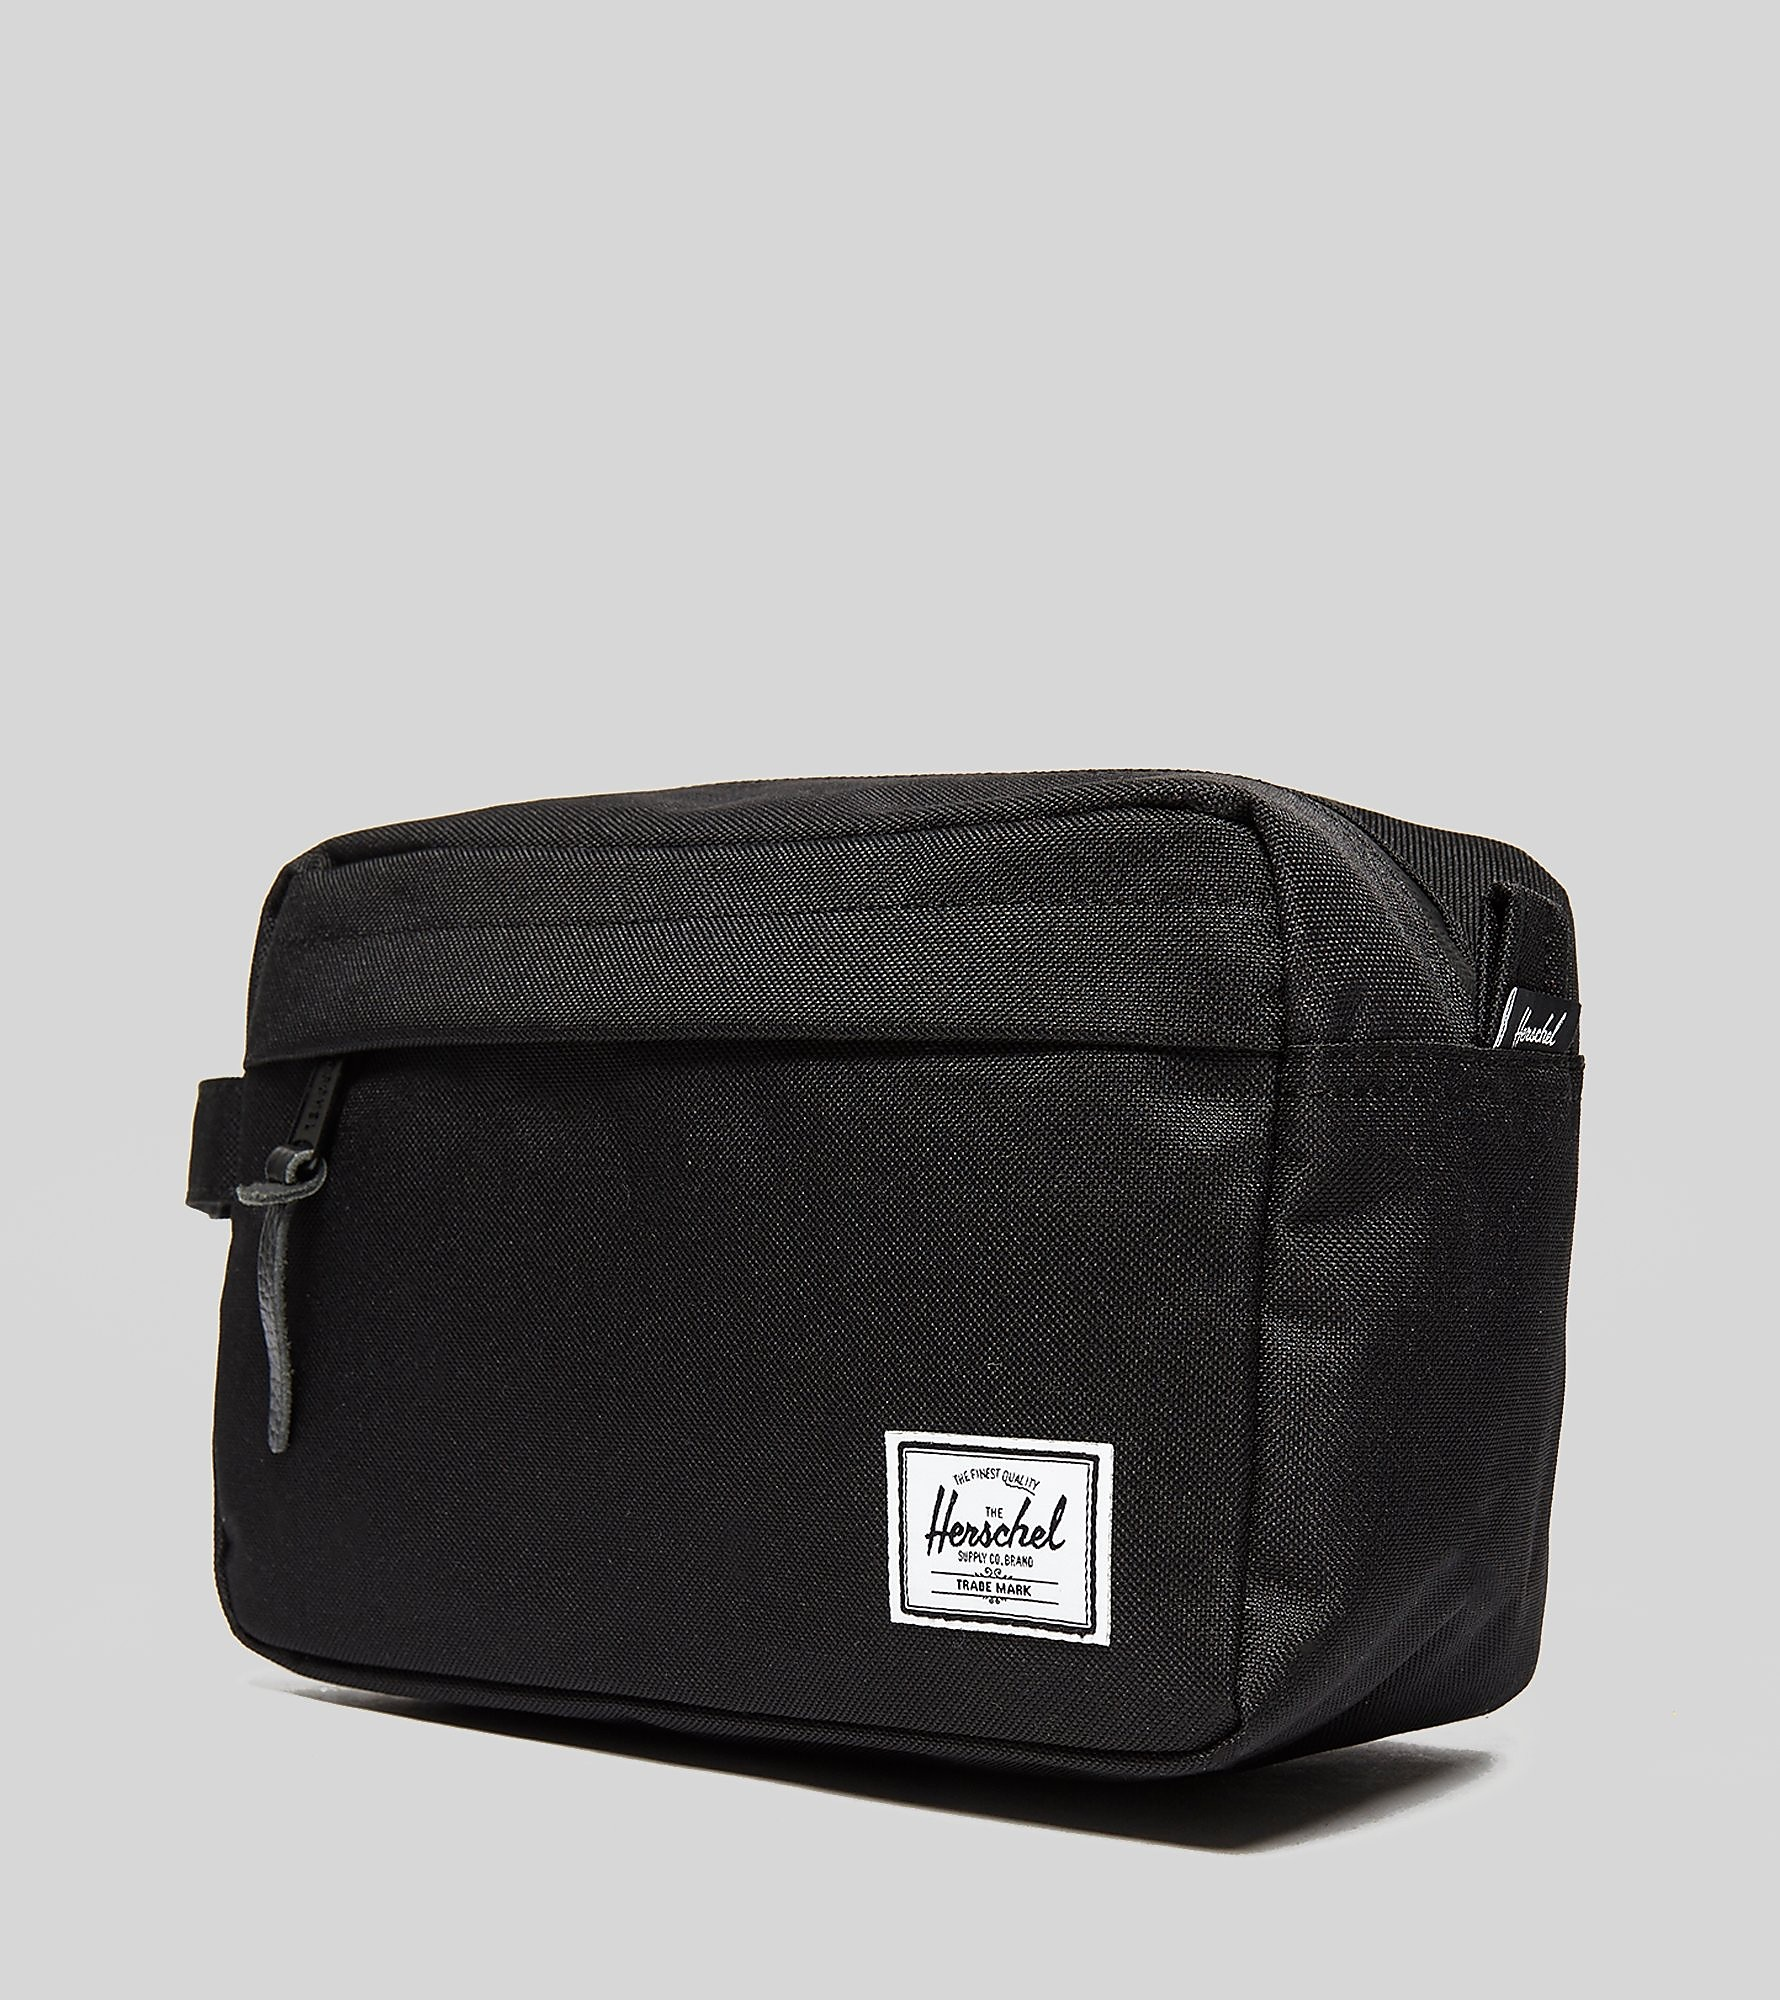 Herschel Supply Co Charter Wash Bag